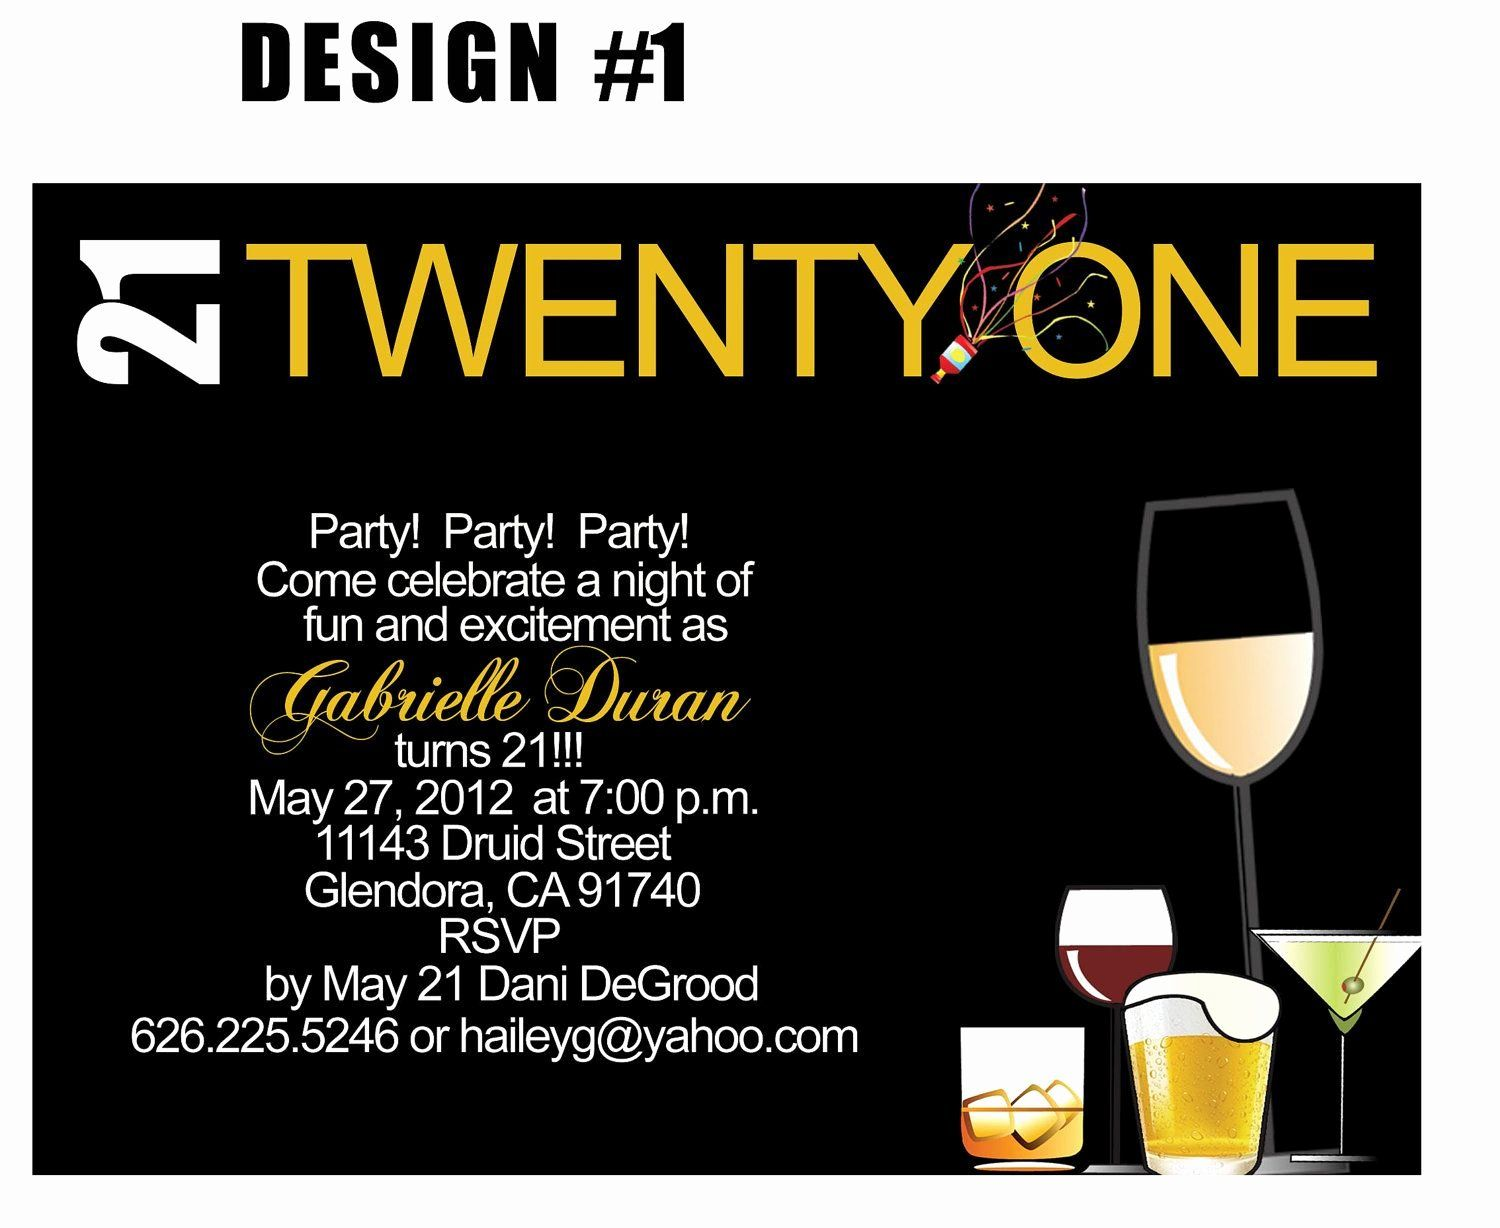 Invitation Cards Template Free Download Awesome 21st Birthday Invitation Templates 21st Birthday Invitations Birthday Invitation Card Template 21st Invitations